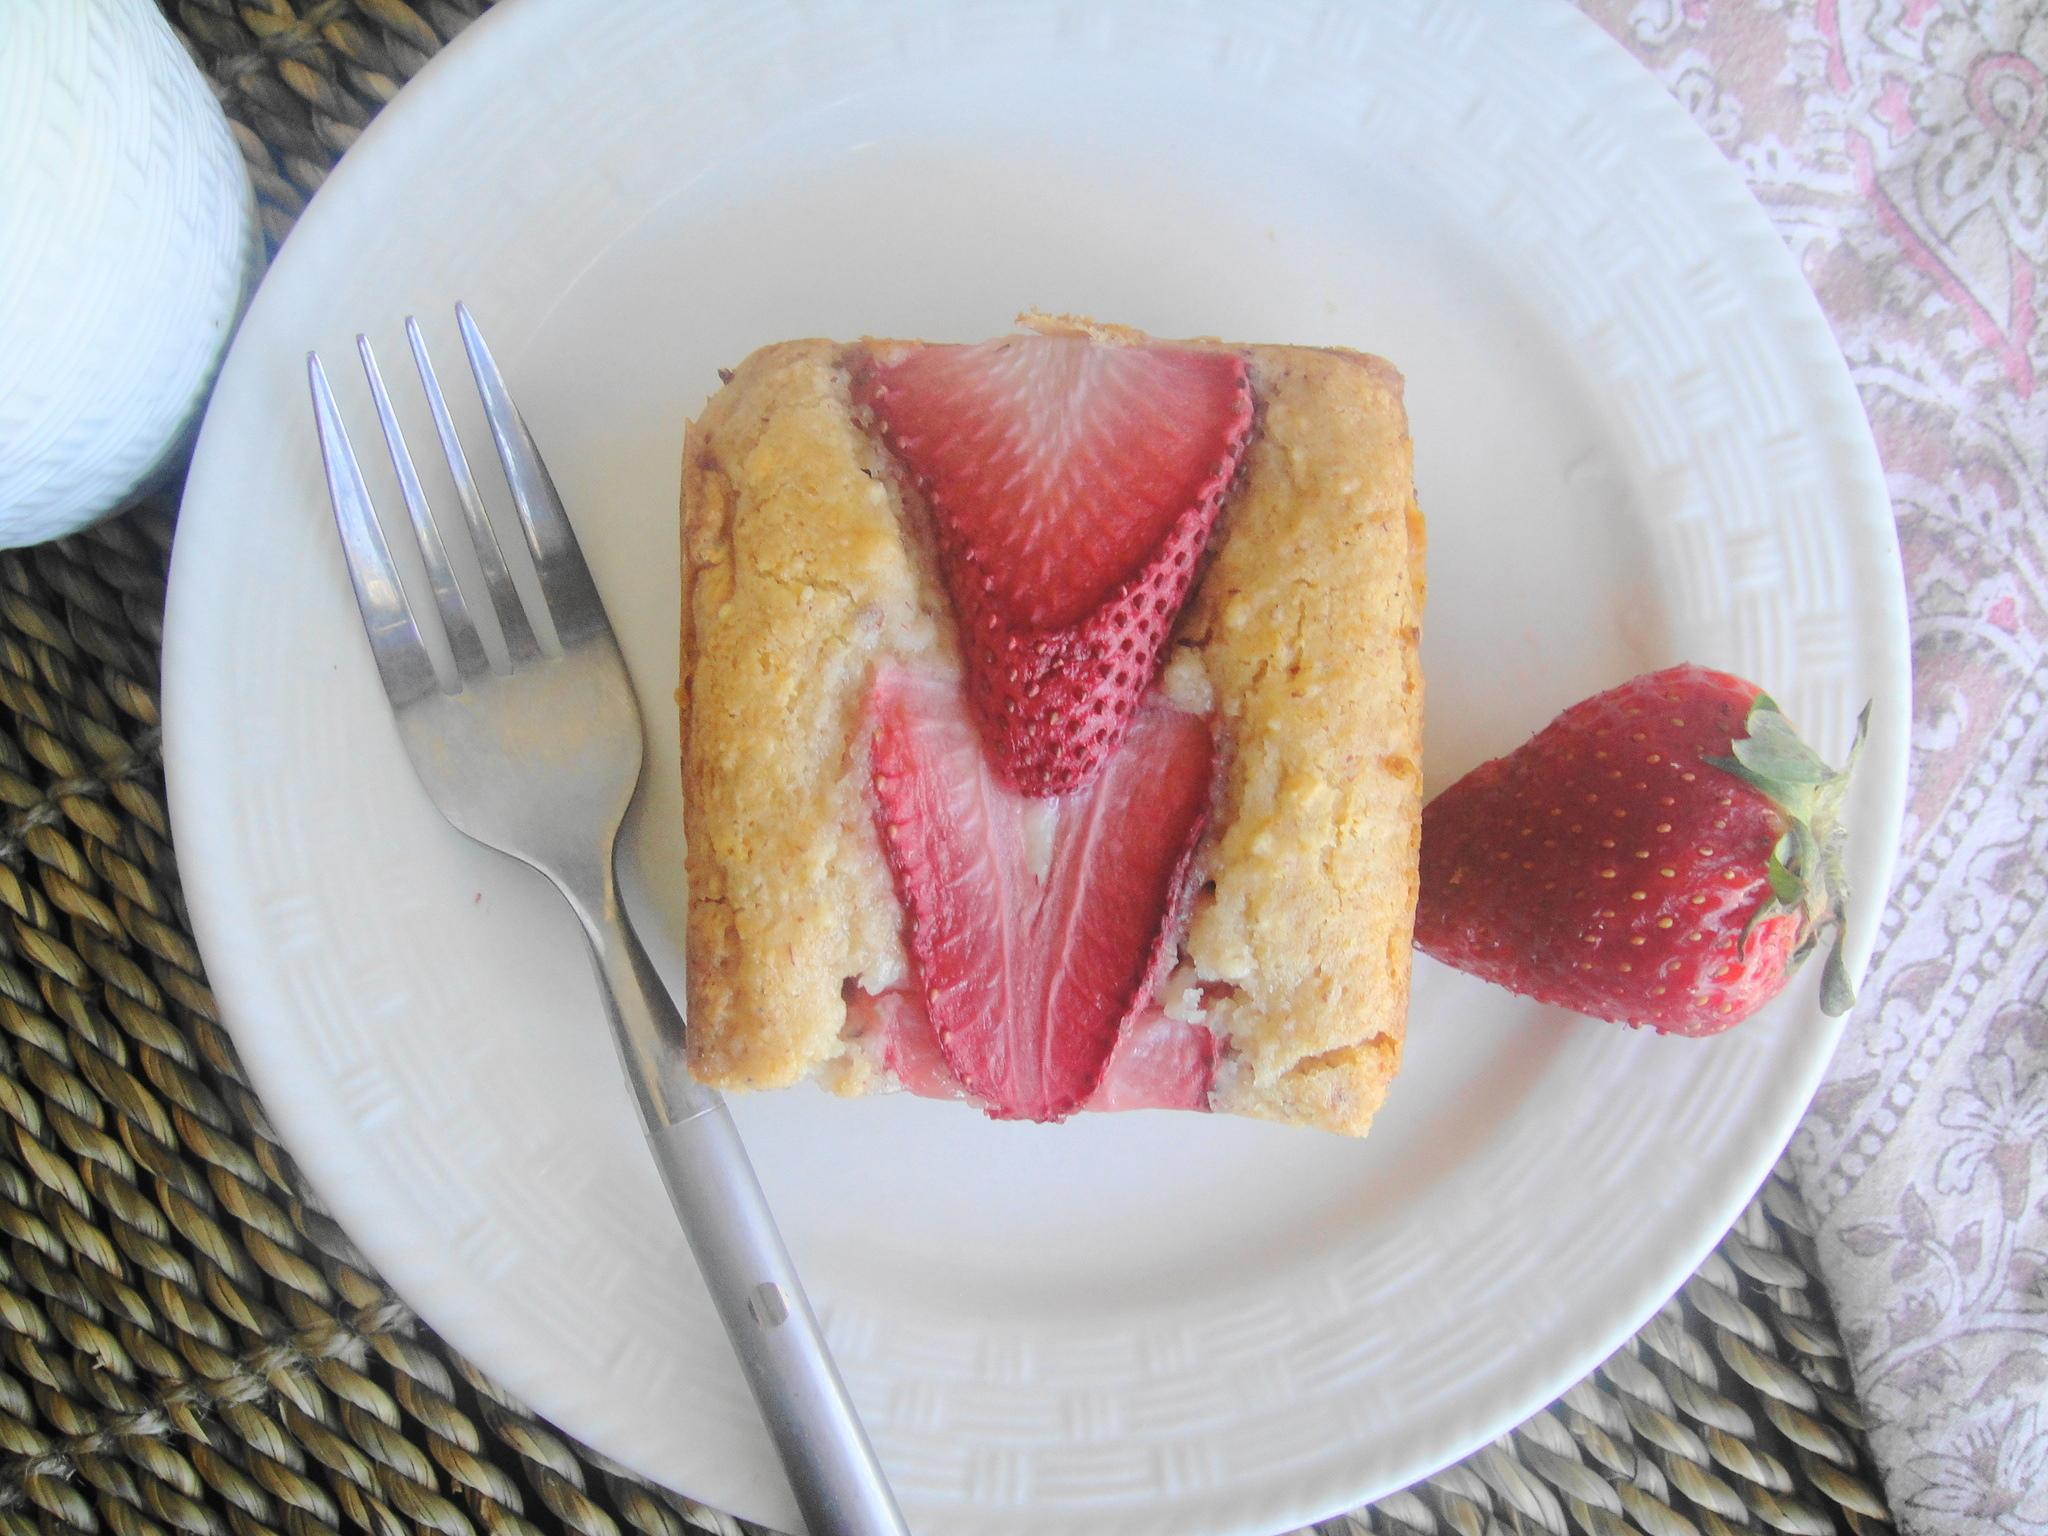 plated strawberry cake